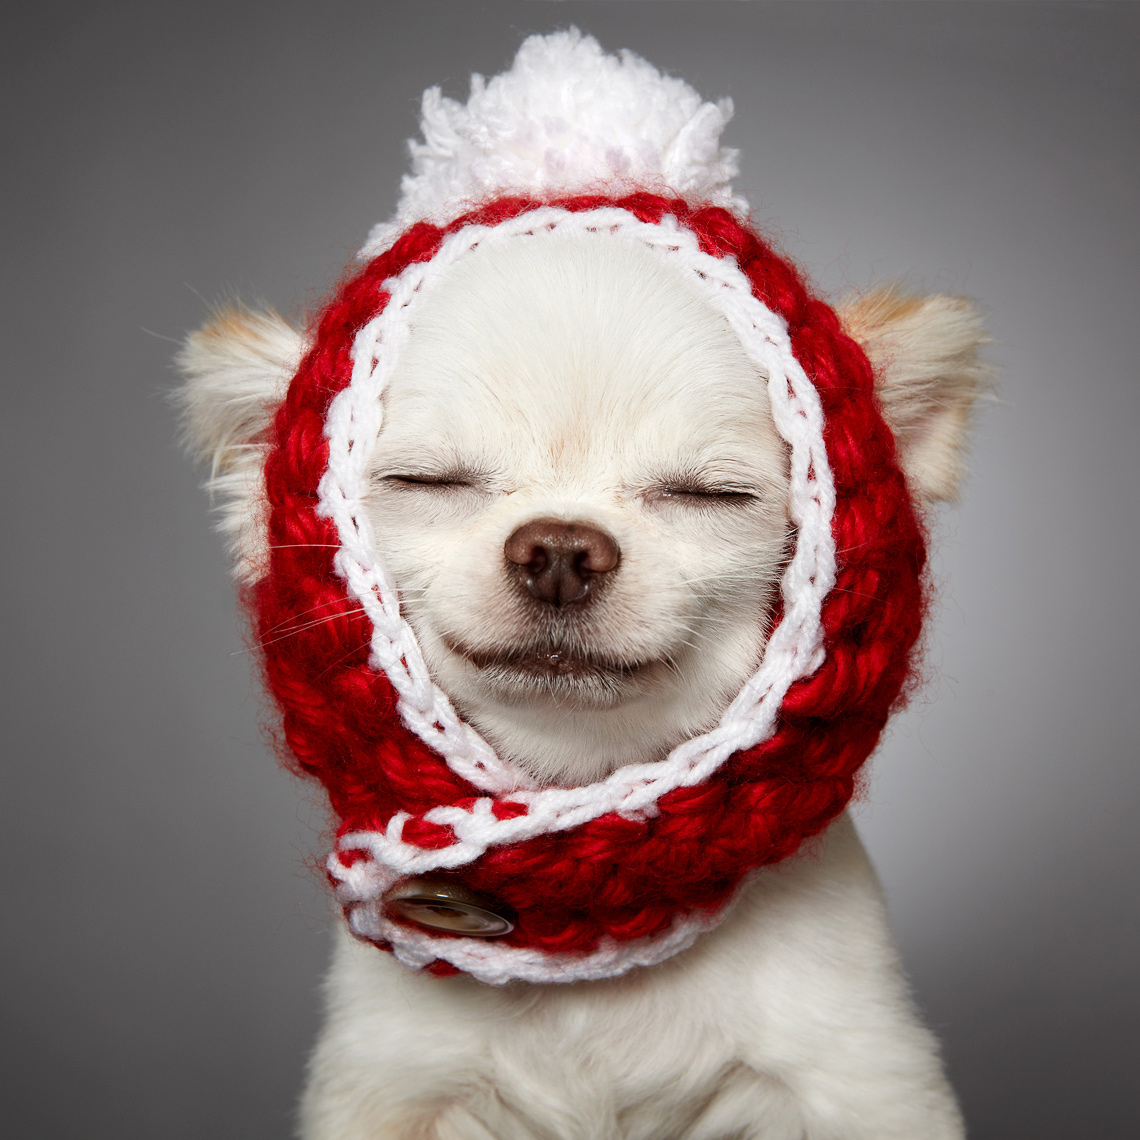 Chihuahua with red pompom hat